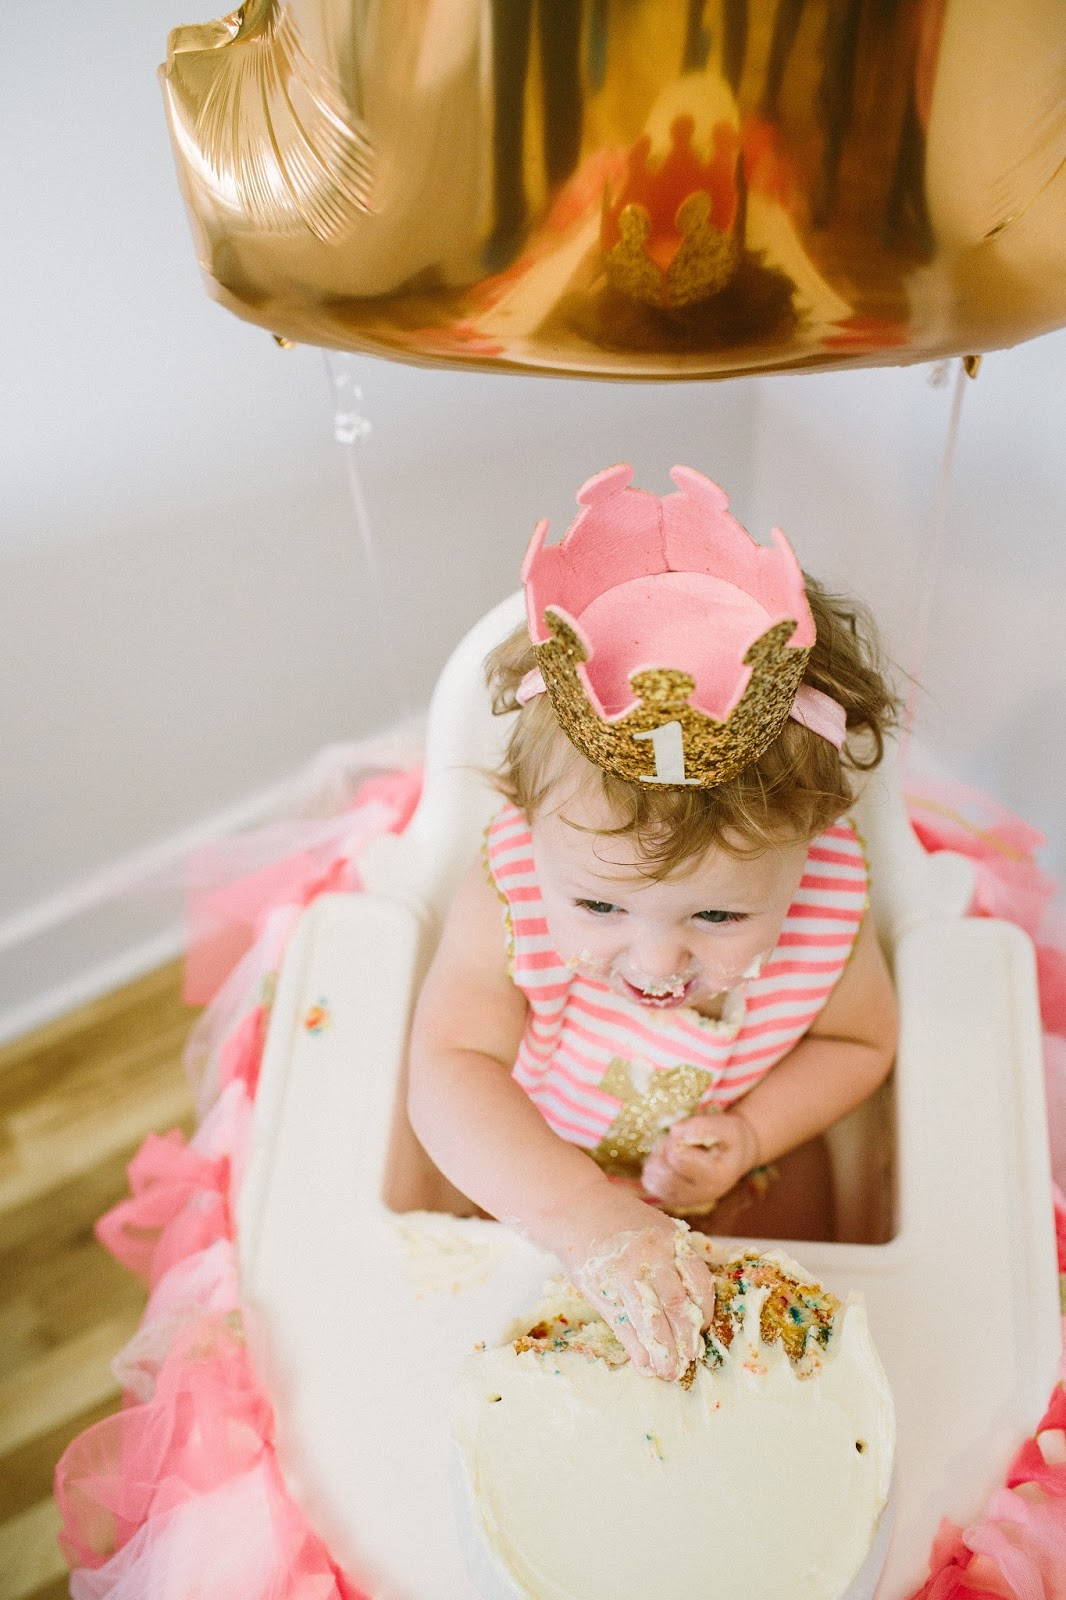 Birthday Baby, First Birthday, Birthday Crown